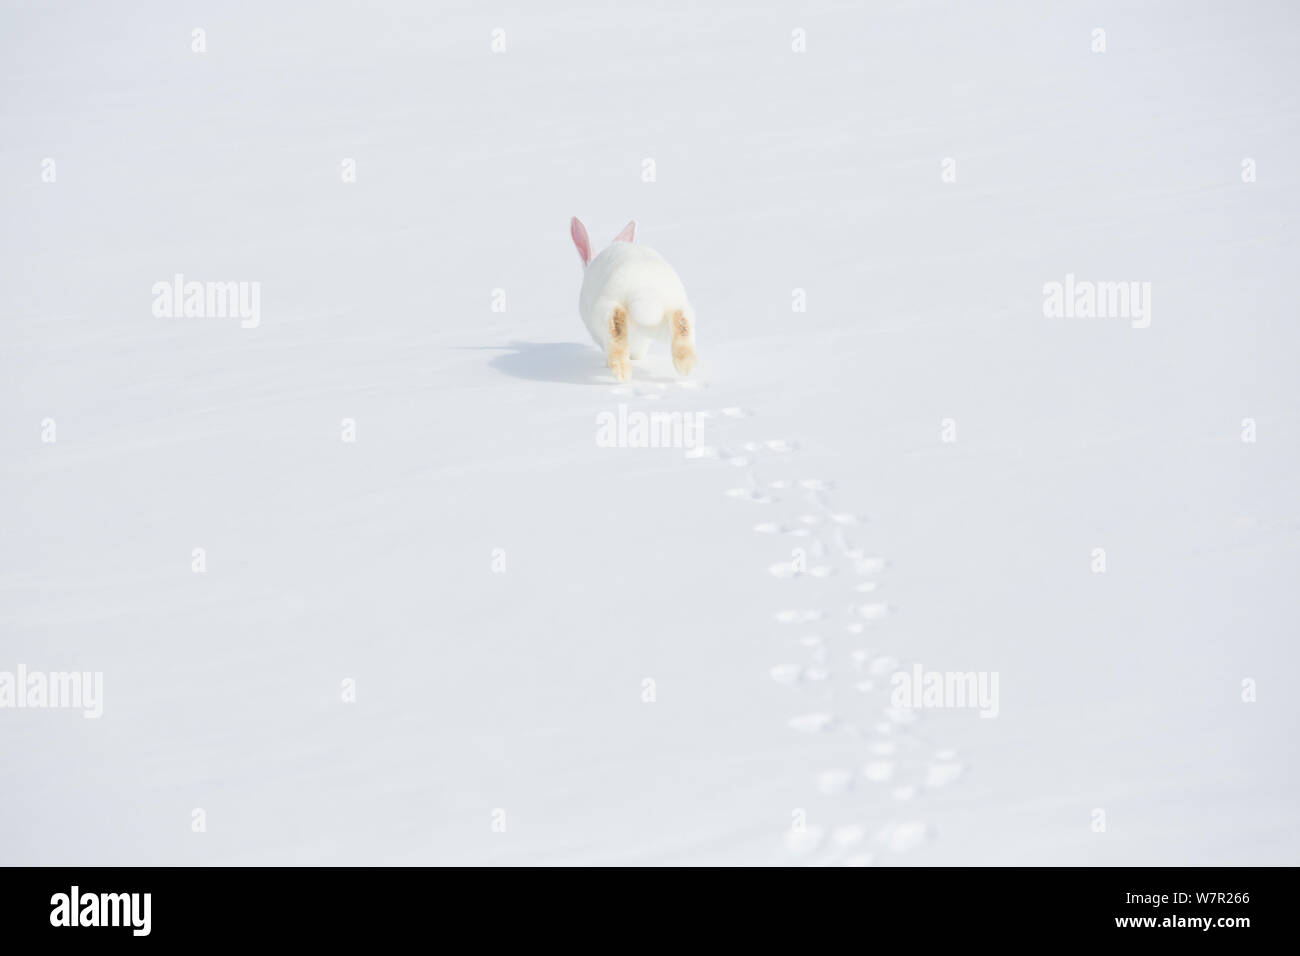 New Zealand Breed White Rabbit Running In Snow Union